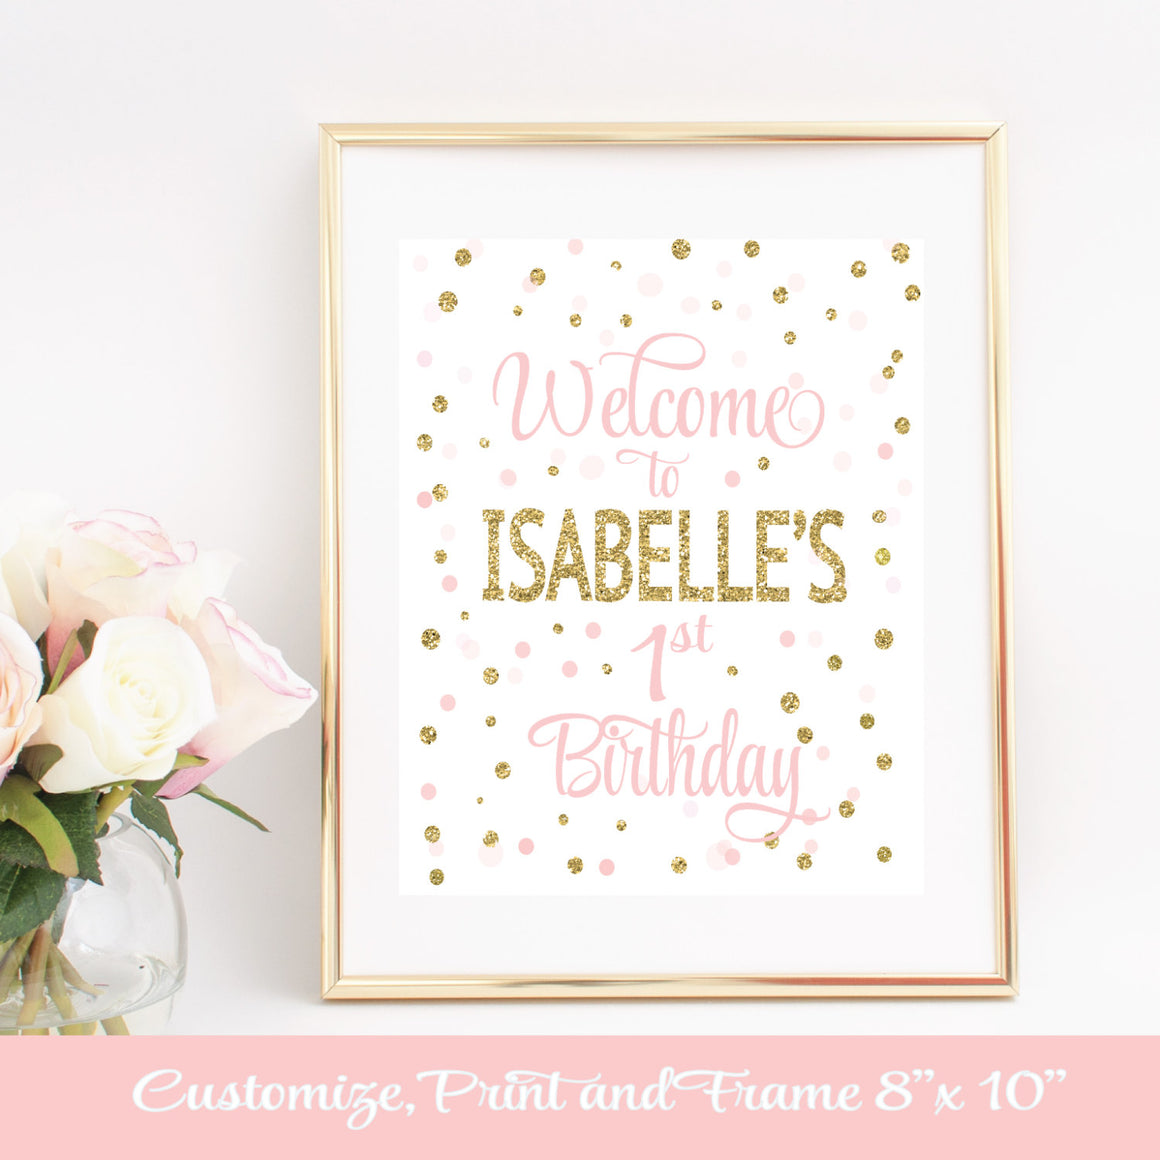 customize, print and frame 8 x 10 inch Welcome to Isabelle's 1st Birthday downloadable print